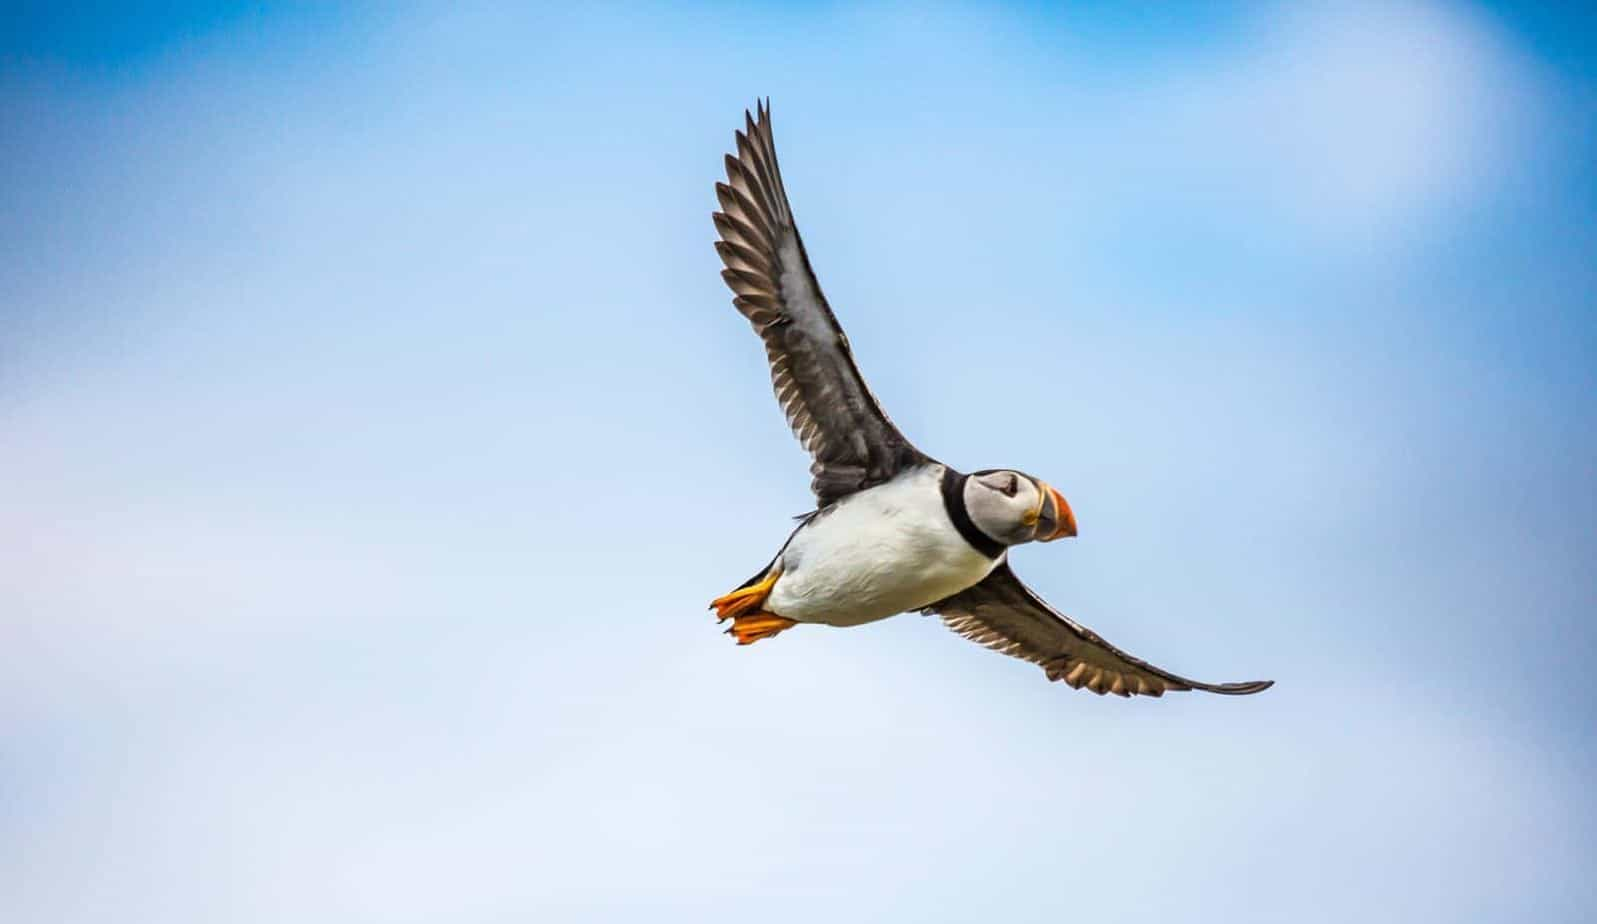 https://pixabay.com/photos/puffin-bird-sea-flight-wildlife-1107405/